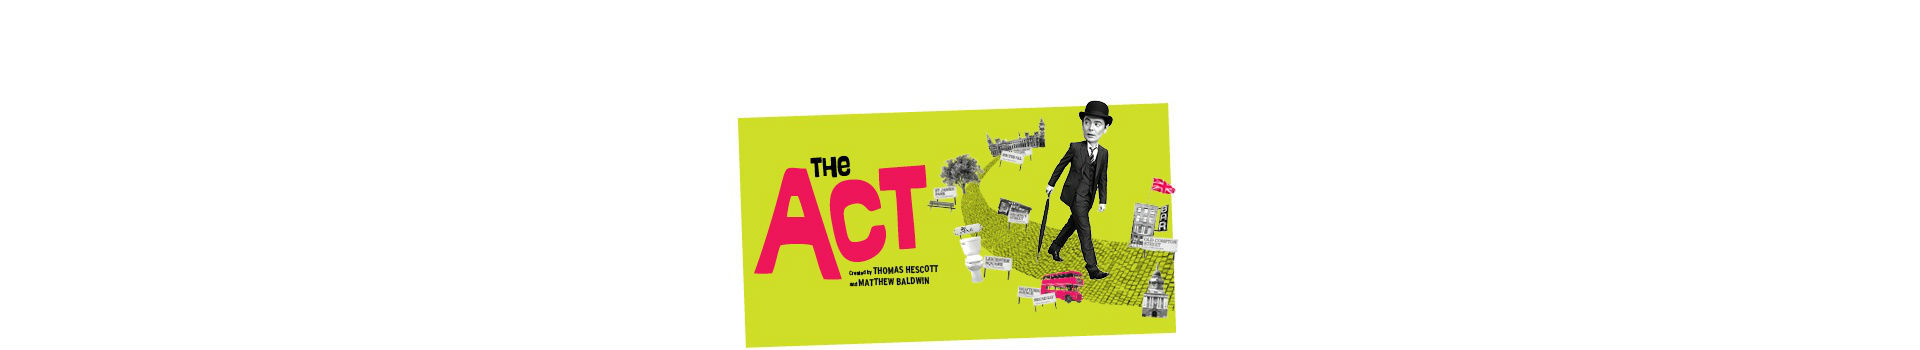 The Act banner image